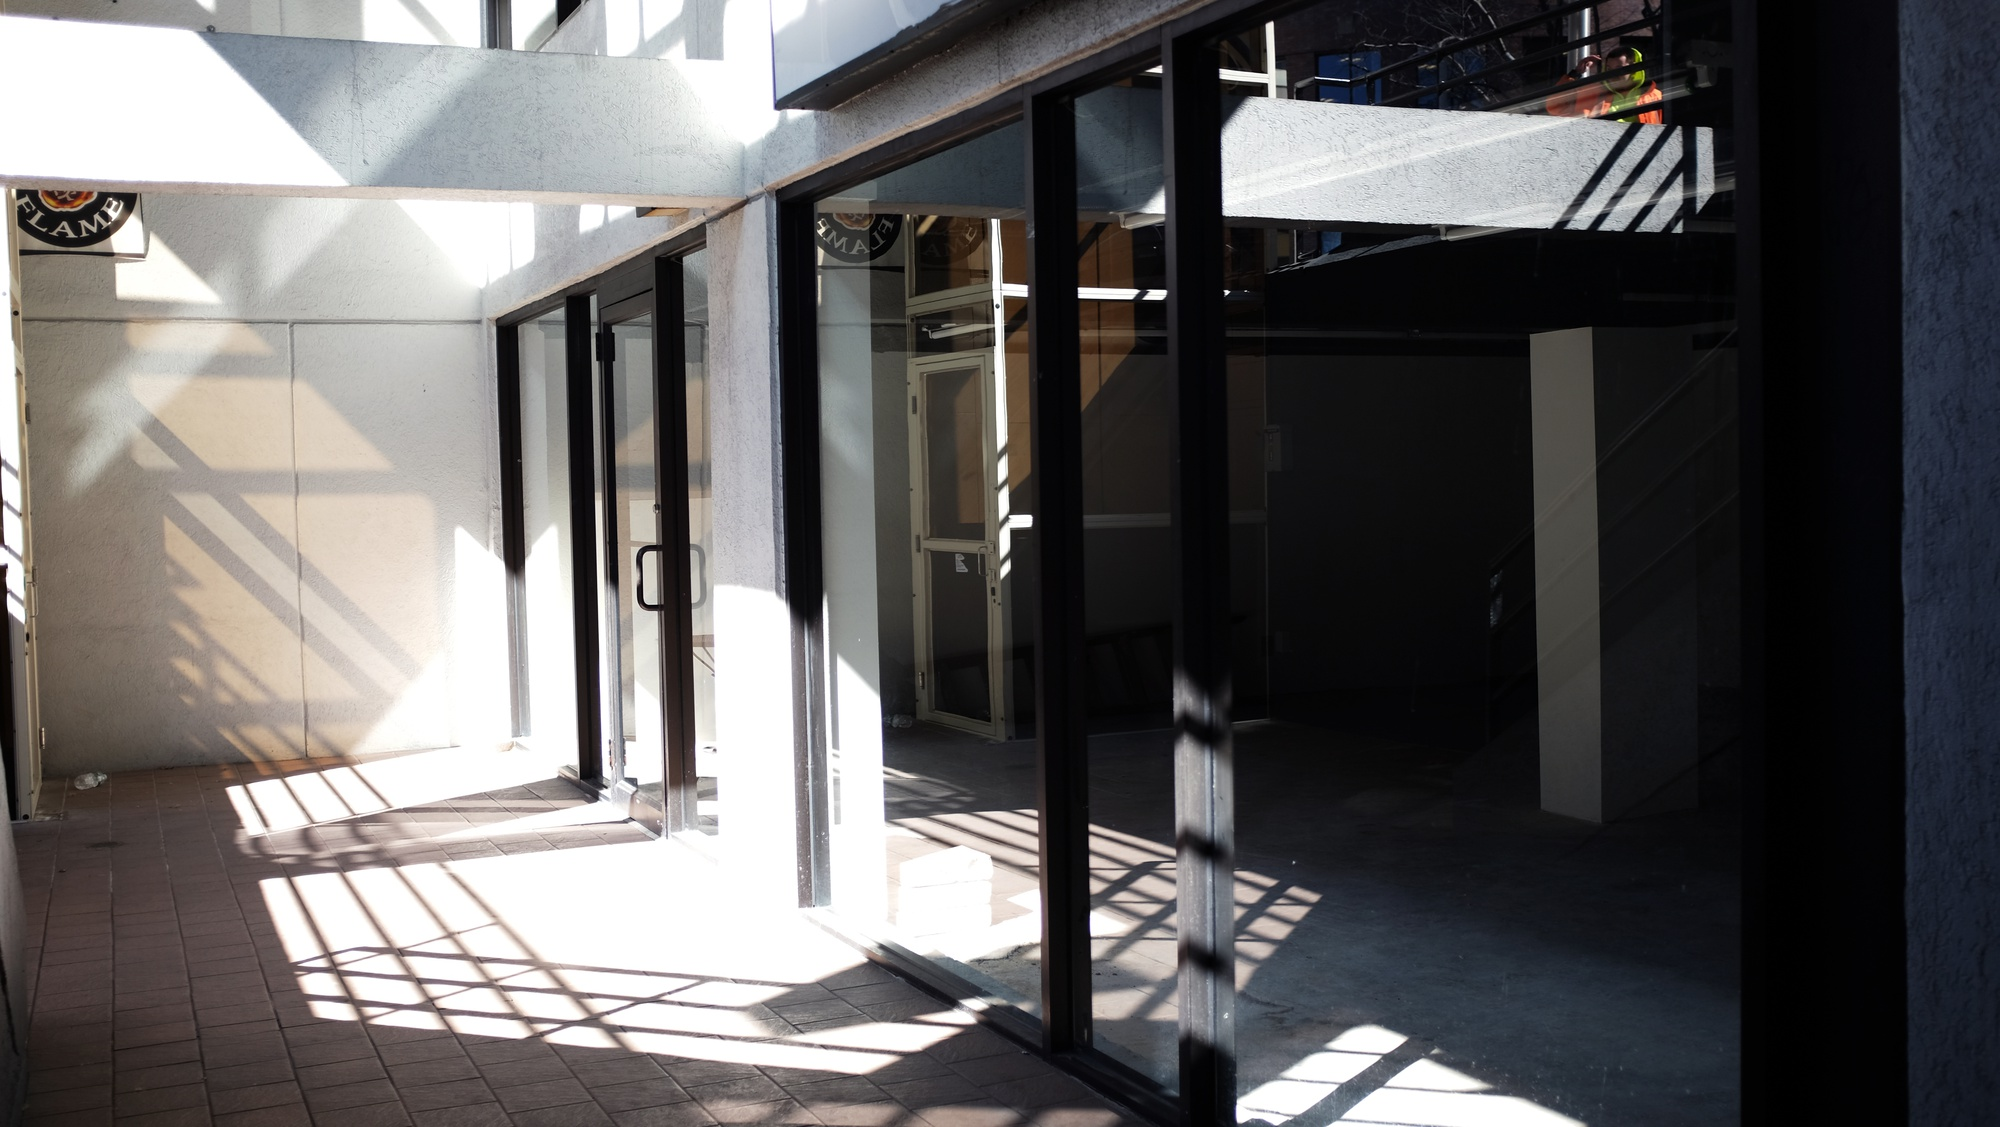 A below-ground retail place located at 1001 Massachusetts Ave seeking approval as a new marijuana dispenser.